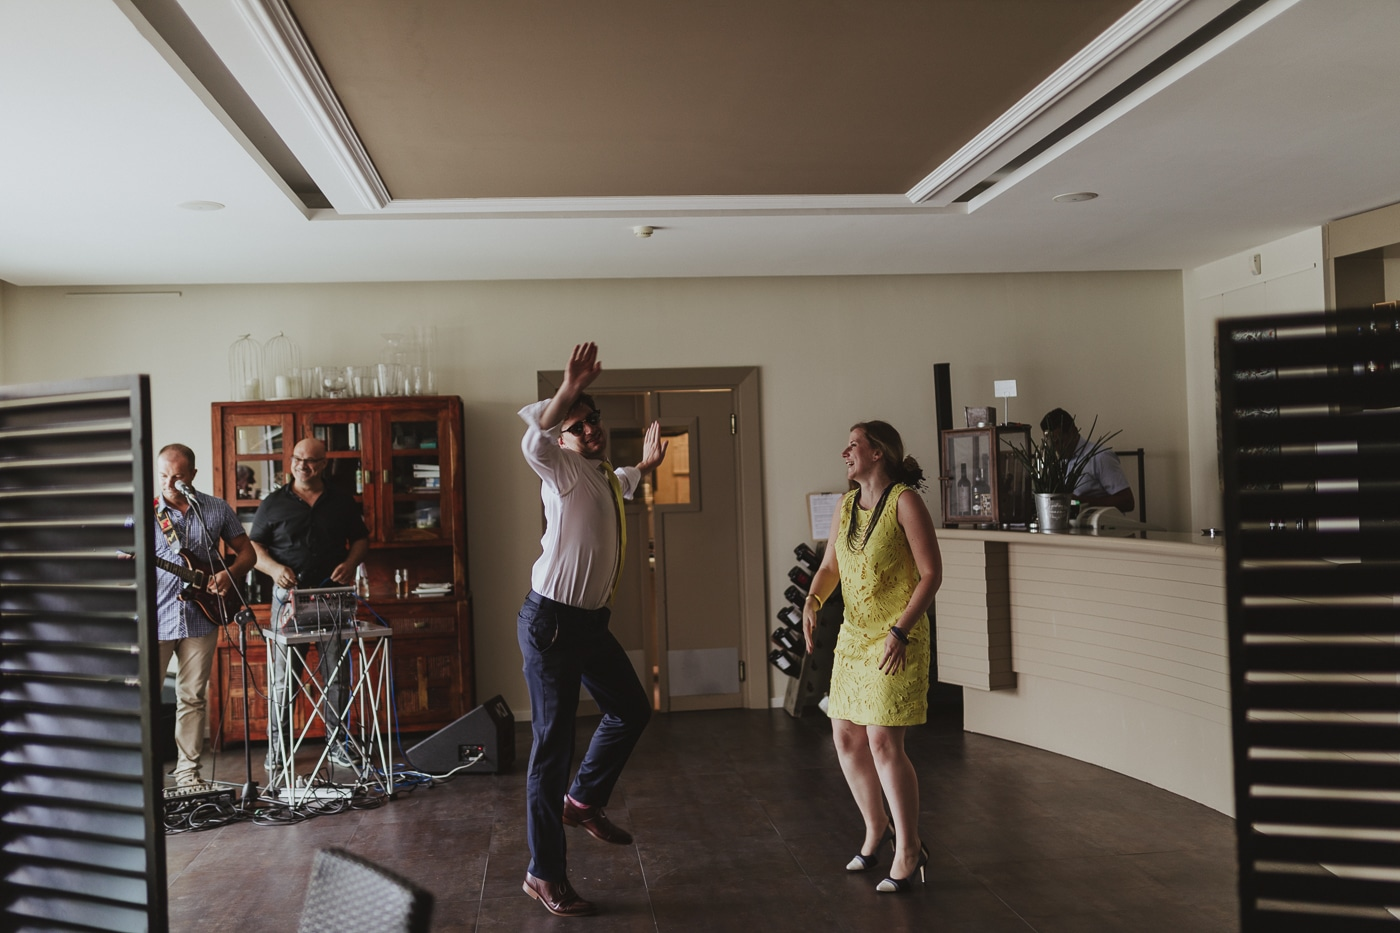 Dancing man in white shirt and woman in yellow dress with band in a bar by Joshua Wyborn